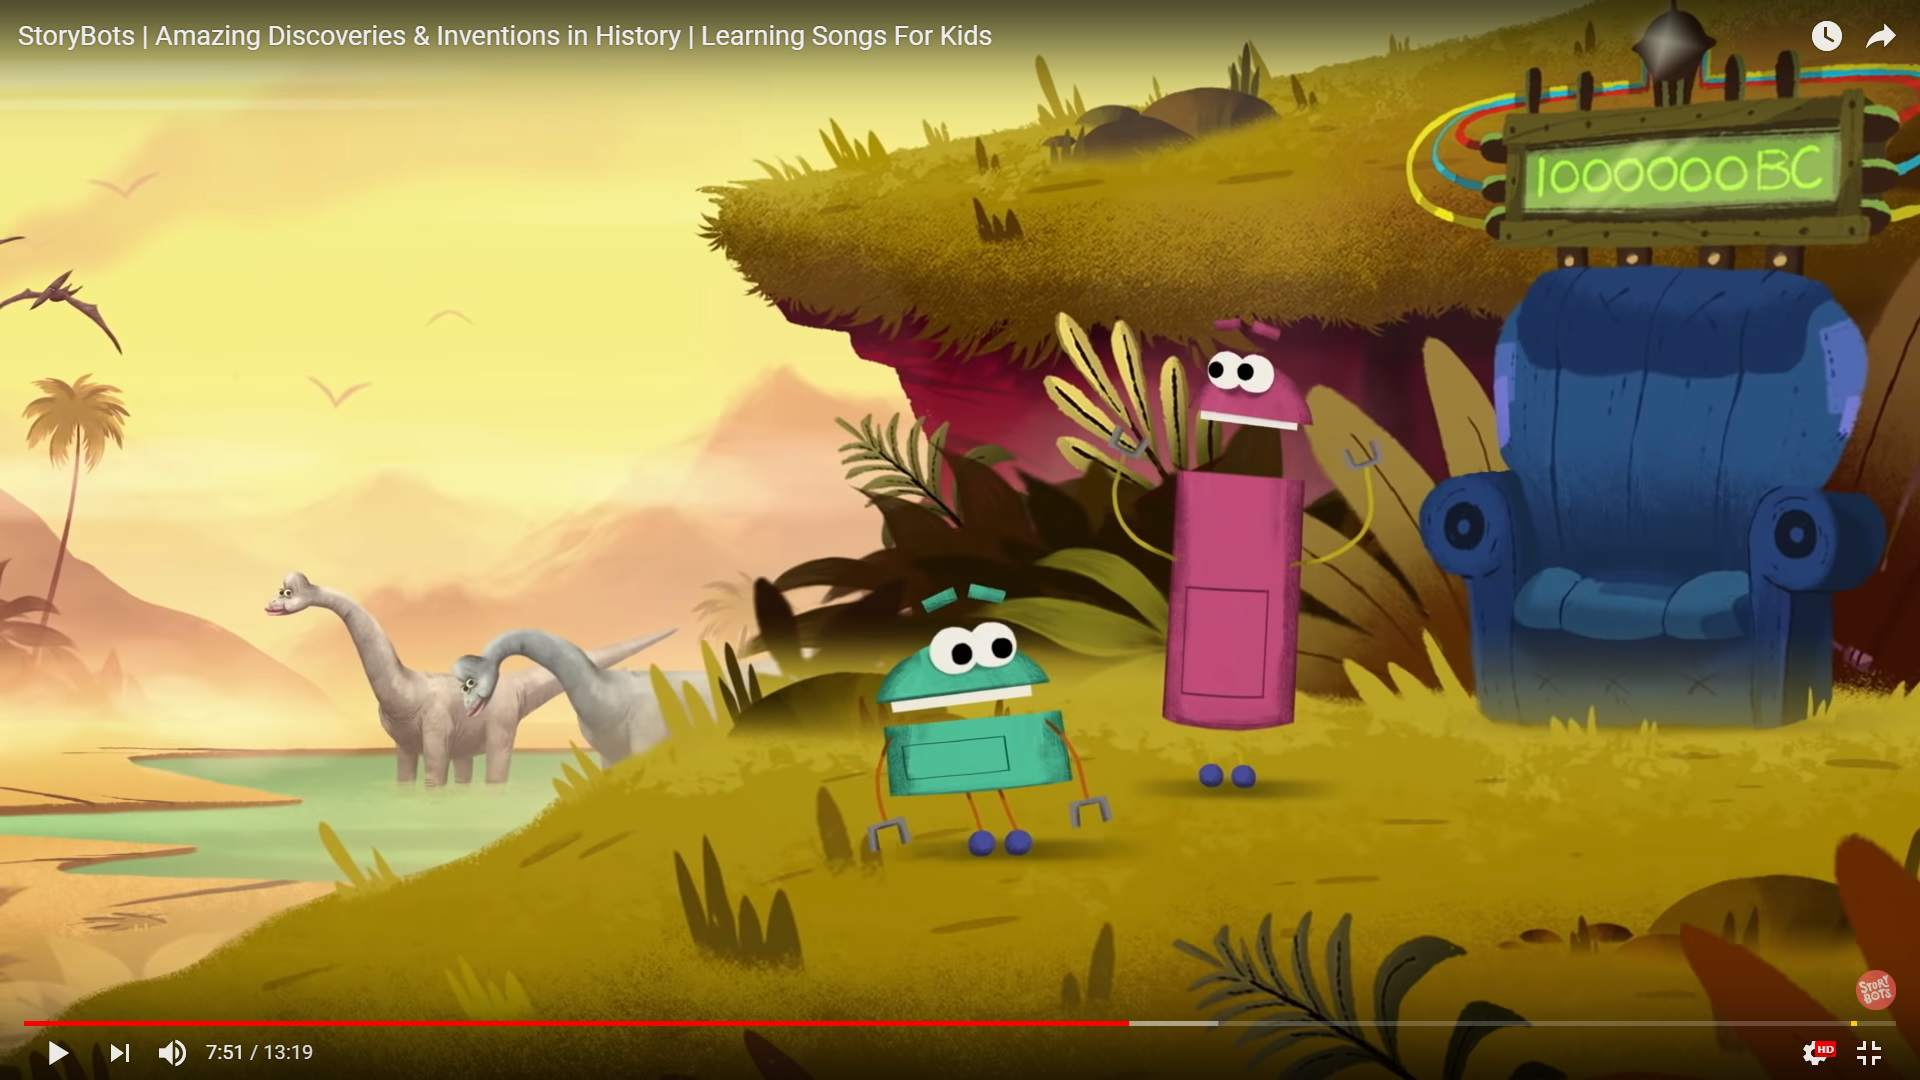 Screenshot from StoryBots showing two robots with dinosaurs and an easy chair in the background